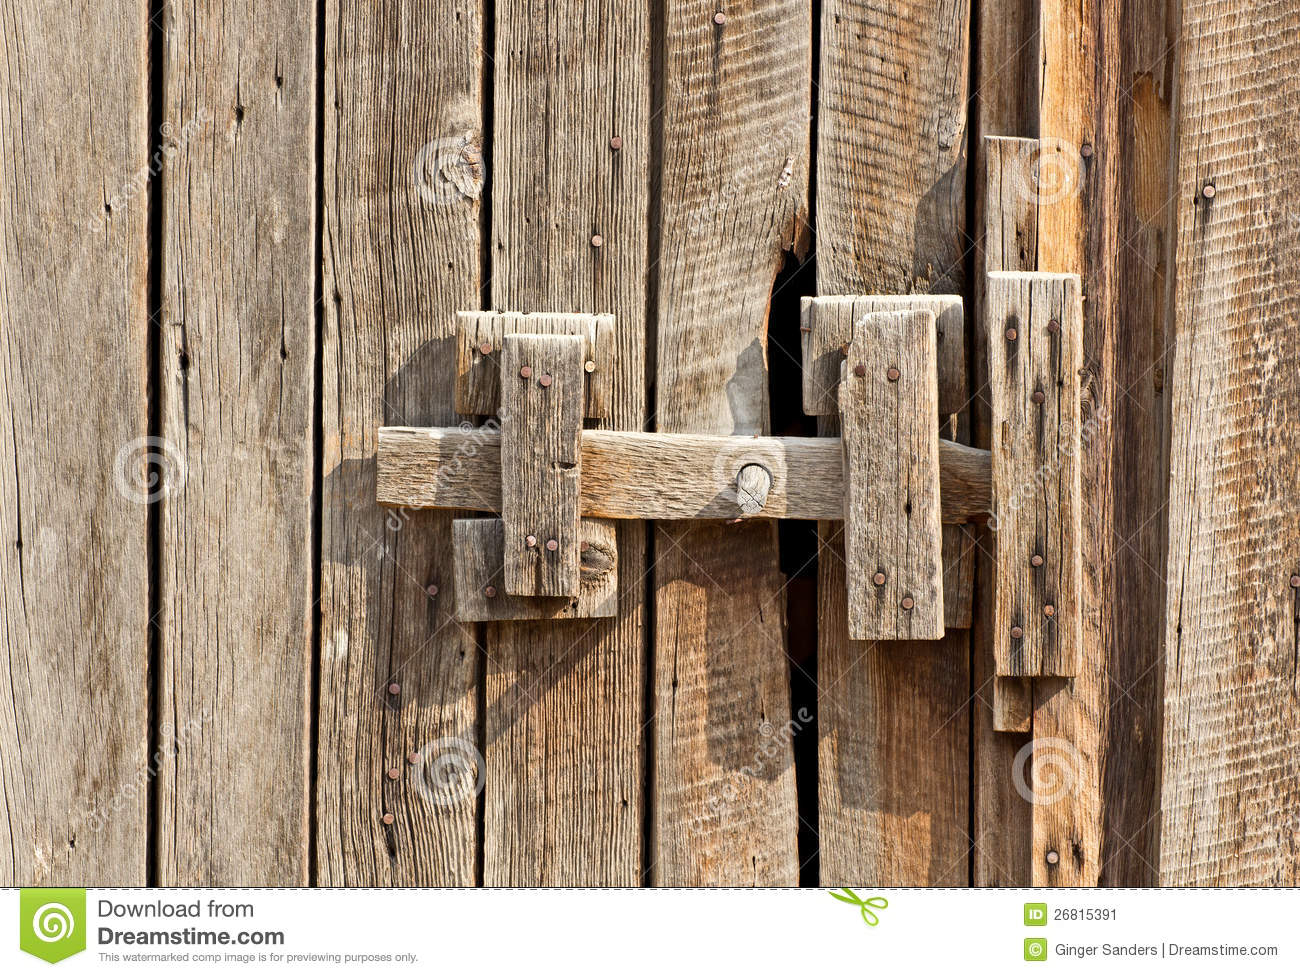 More similar stock images of ` Vintage Wooden Latch On Building `